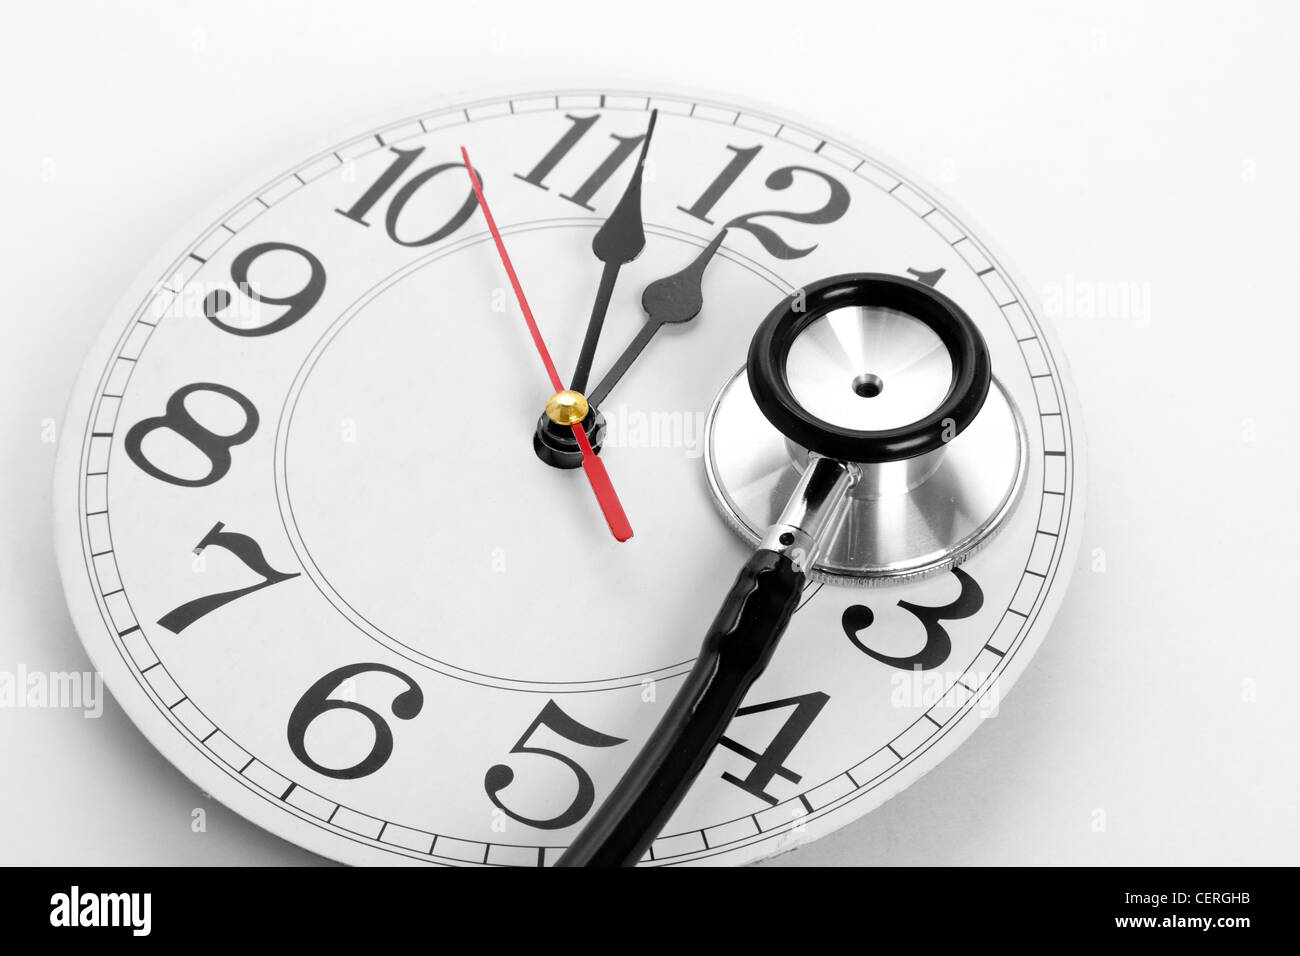 stethoscope and clock concept of time problems stock photo